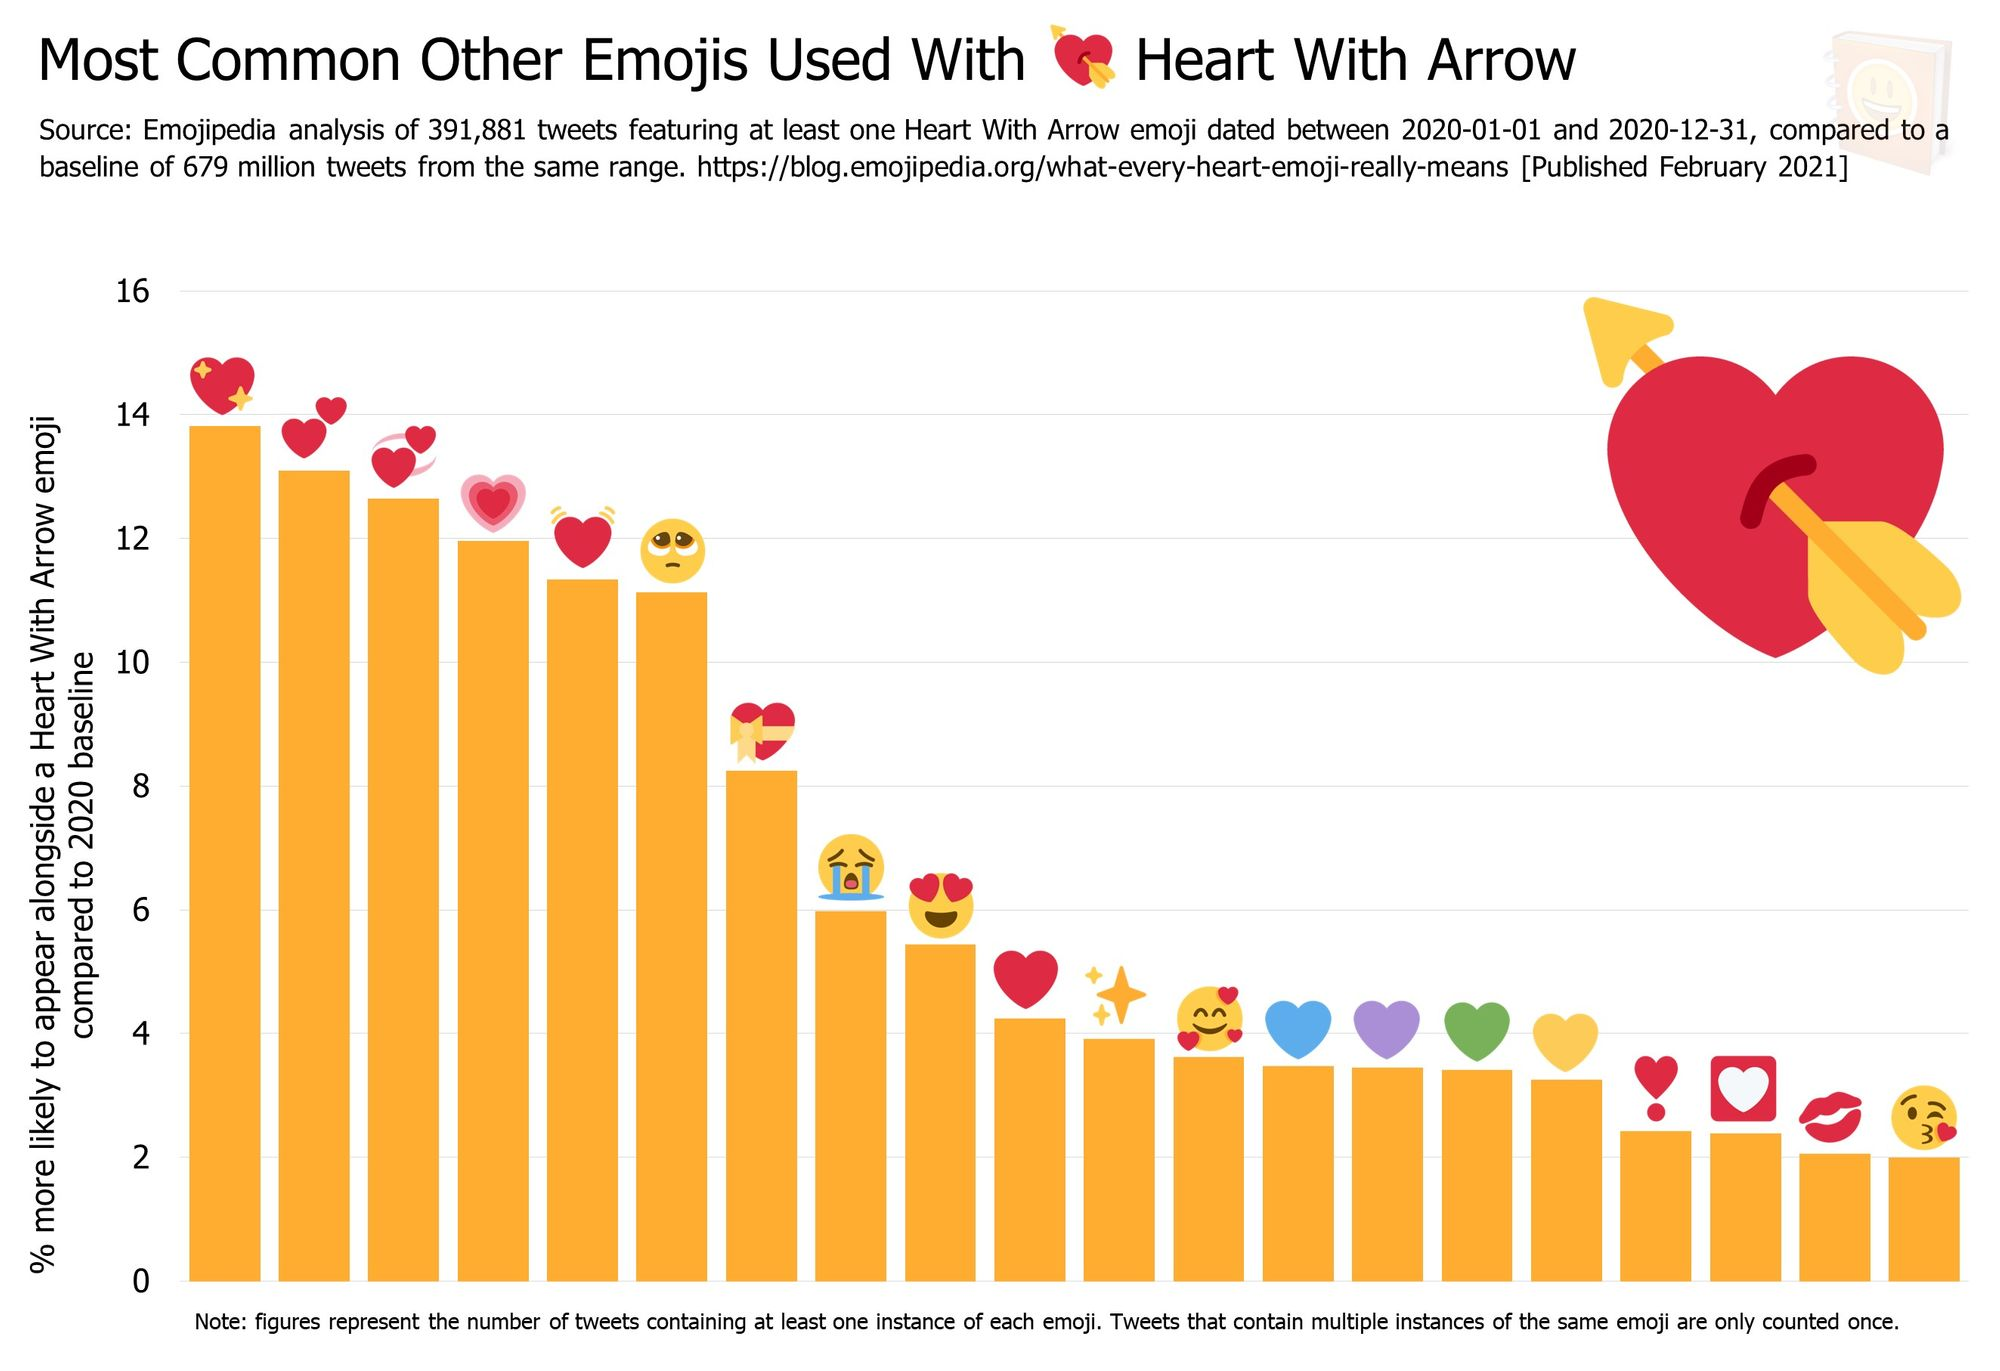 Emojipedia-Blog---What-Every-Heart-Emoji-Really-Means---Most-Common-Other-Emojis-Used-With------Heart-With-Arrow